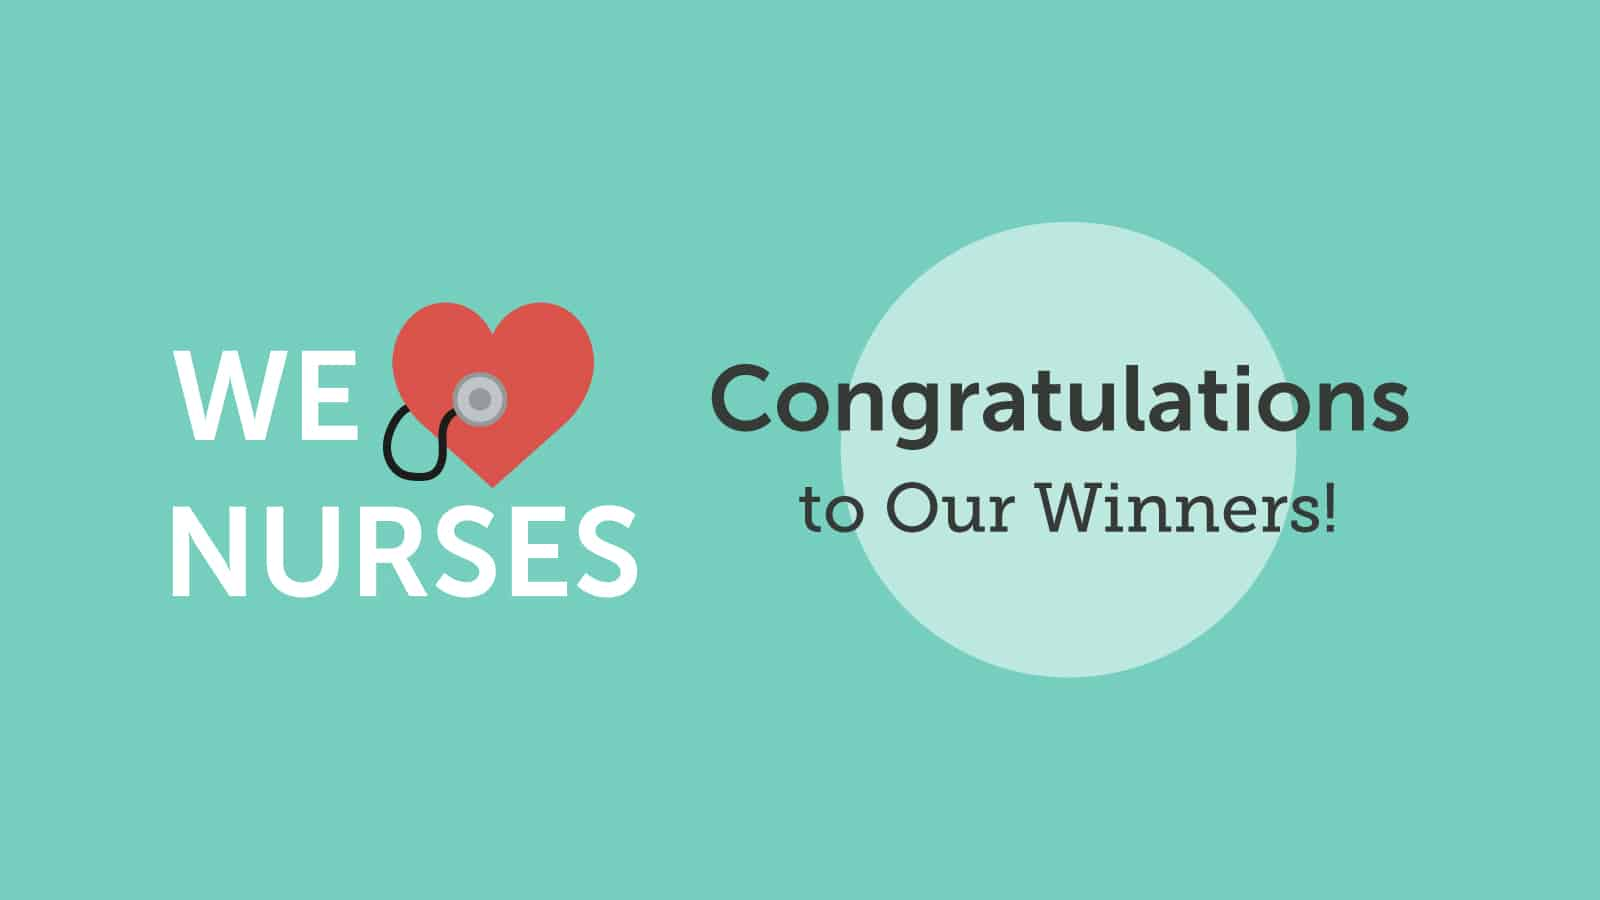 We ♥ Nurses – Congratulations to Our Winners!